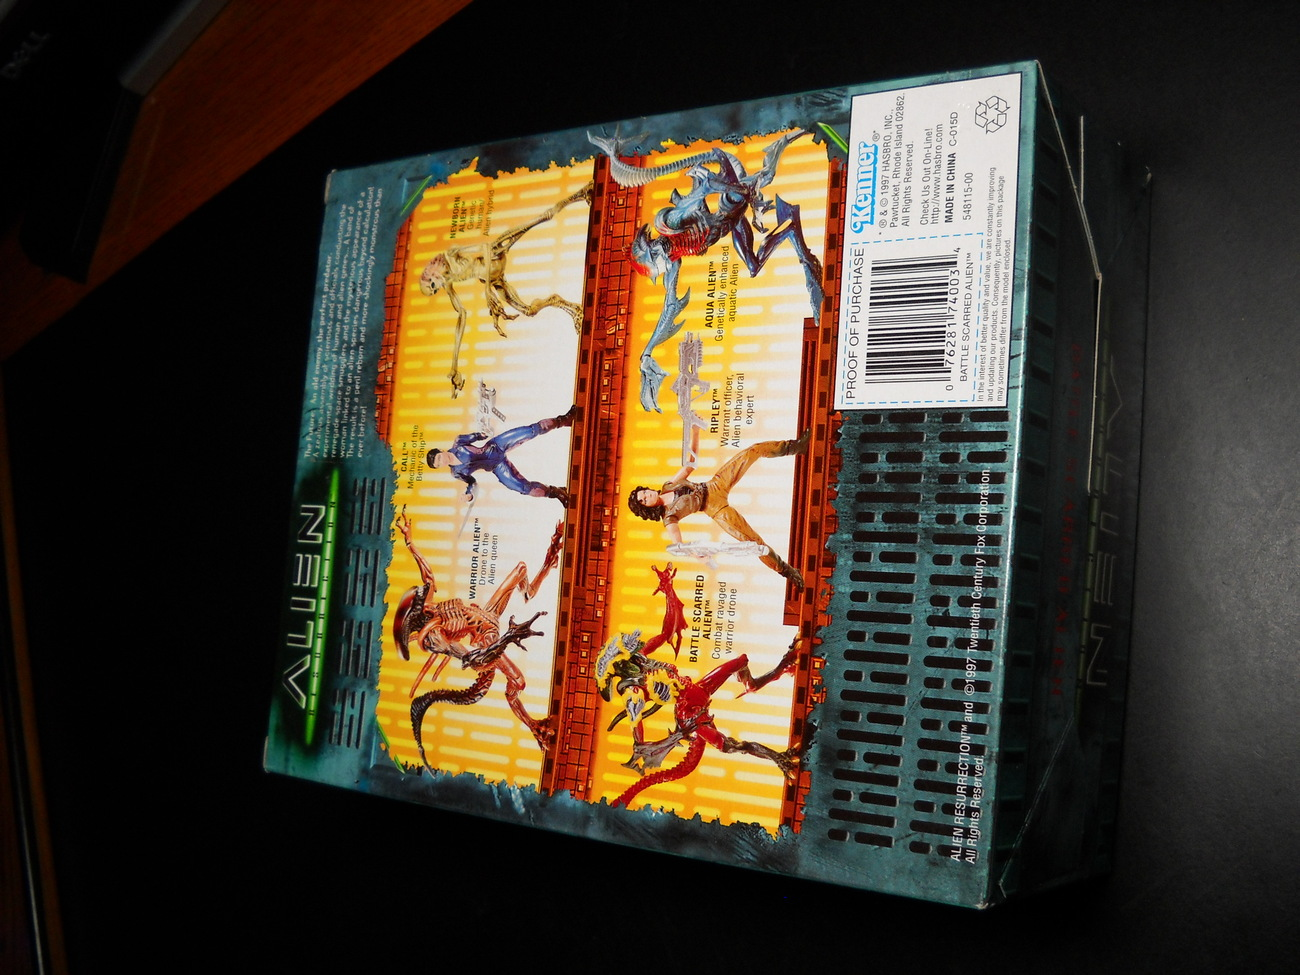 Kenner Hasbro Aliens Alien Resurrection Battle Scarred Alien Factory Sealed Box